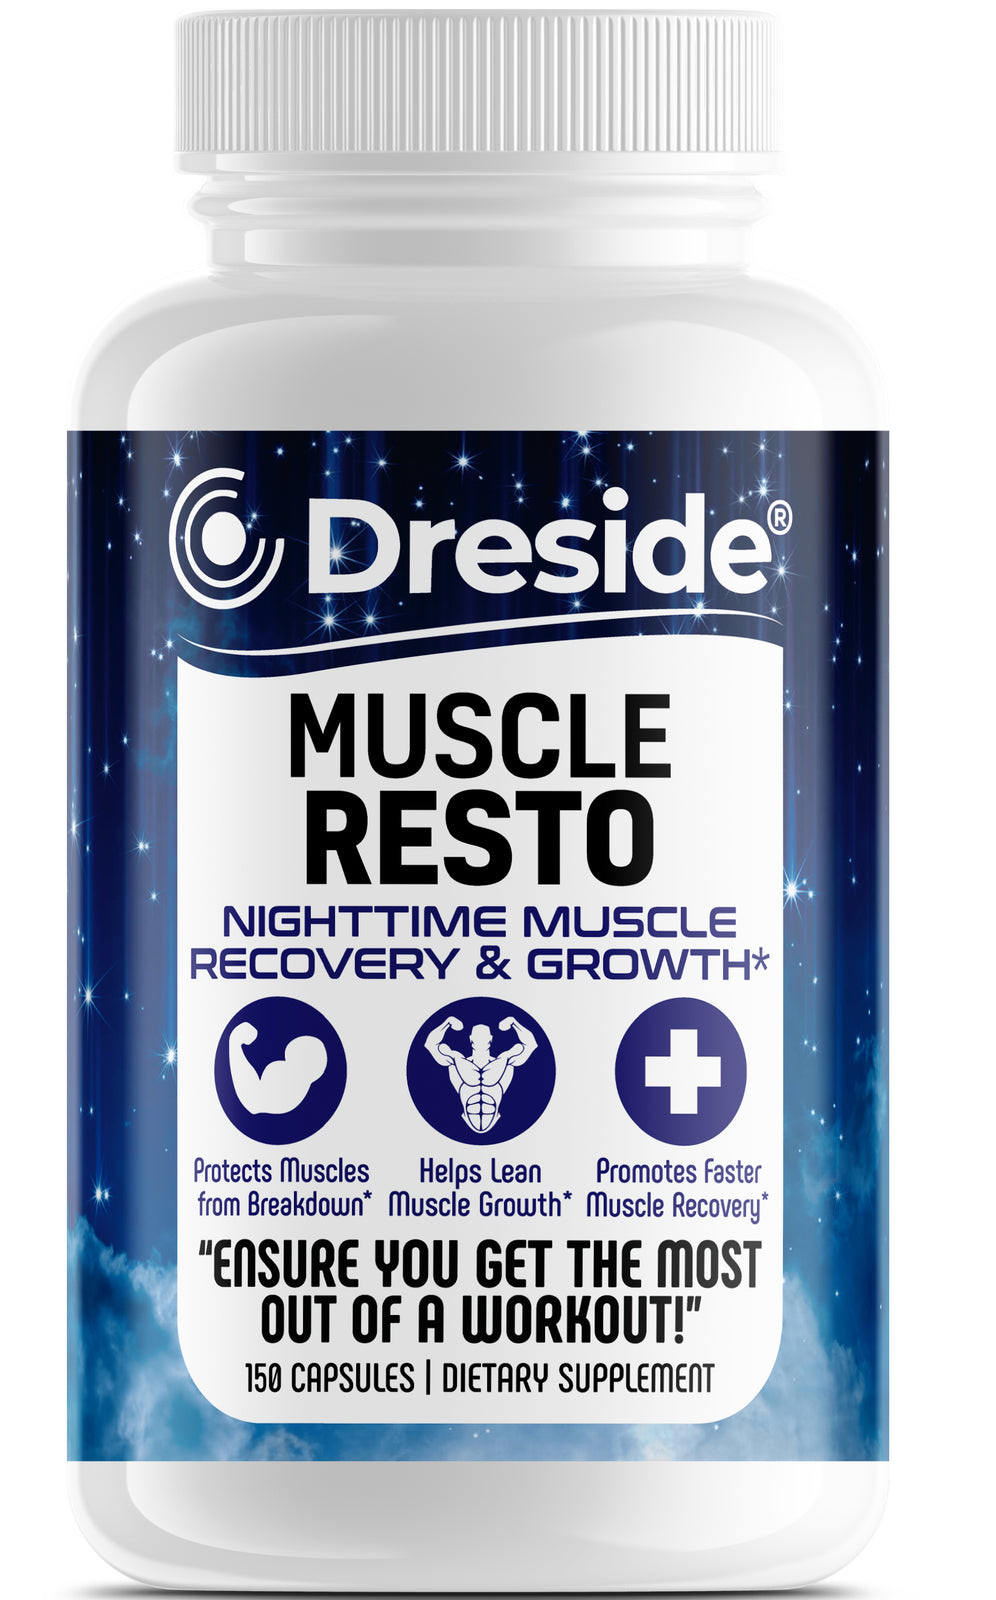 Muscle Resto - Nighttime Recovery and Growth